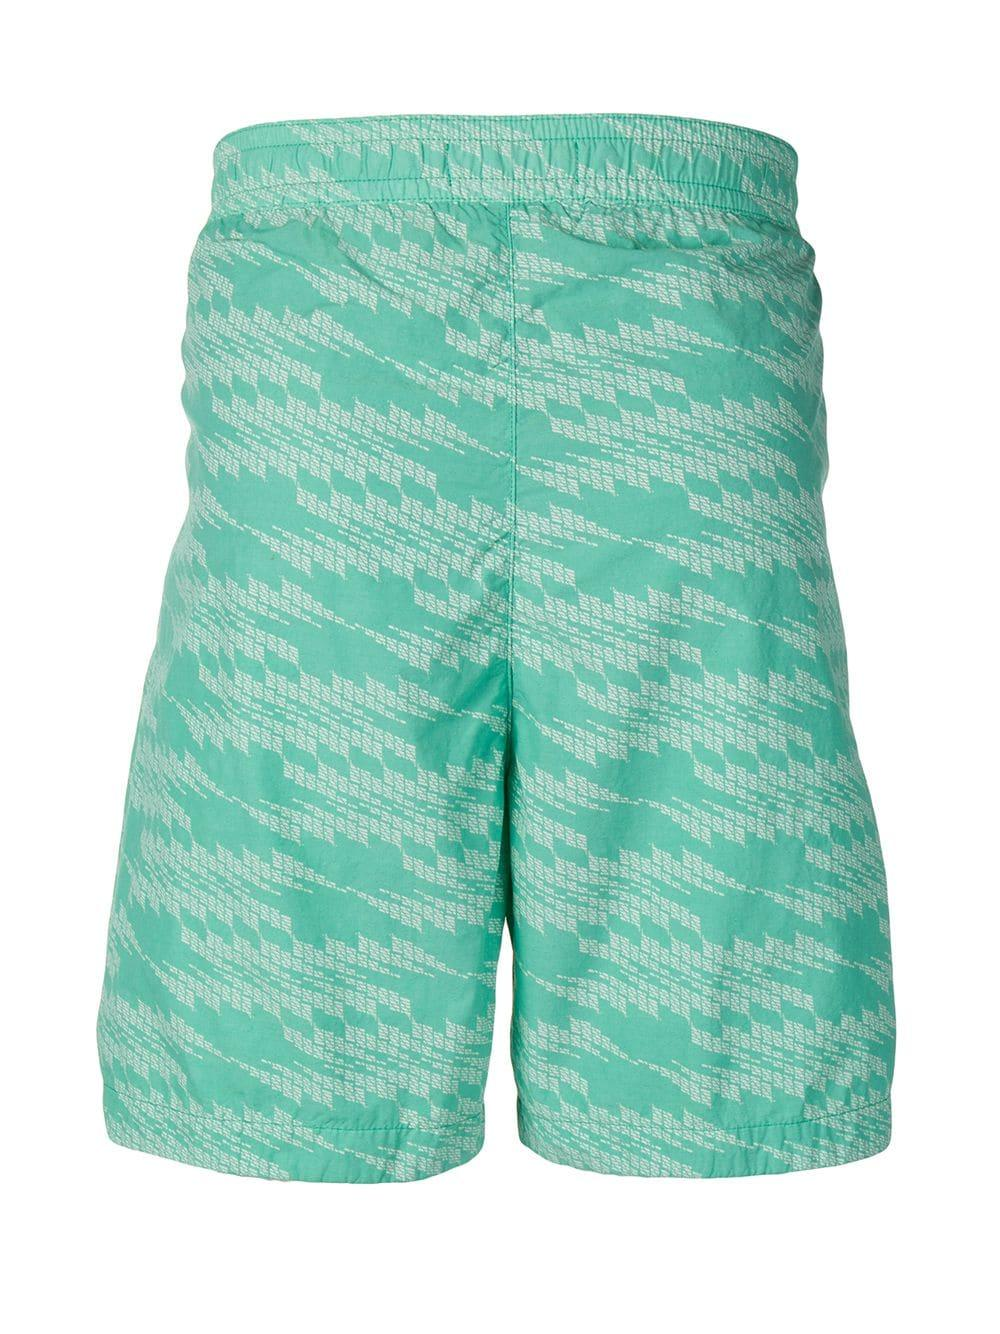 6a911ef12d Lyst - Stone Island Shadow Project Drawstring Waist Swimming Trunks in  Green for Men